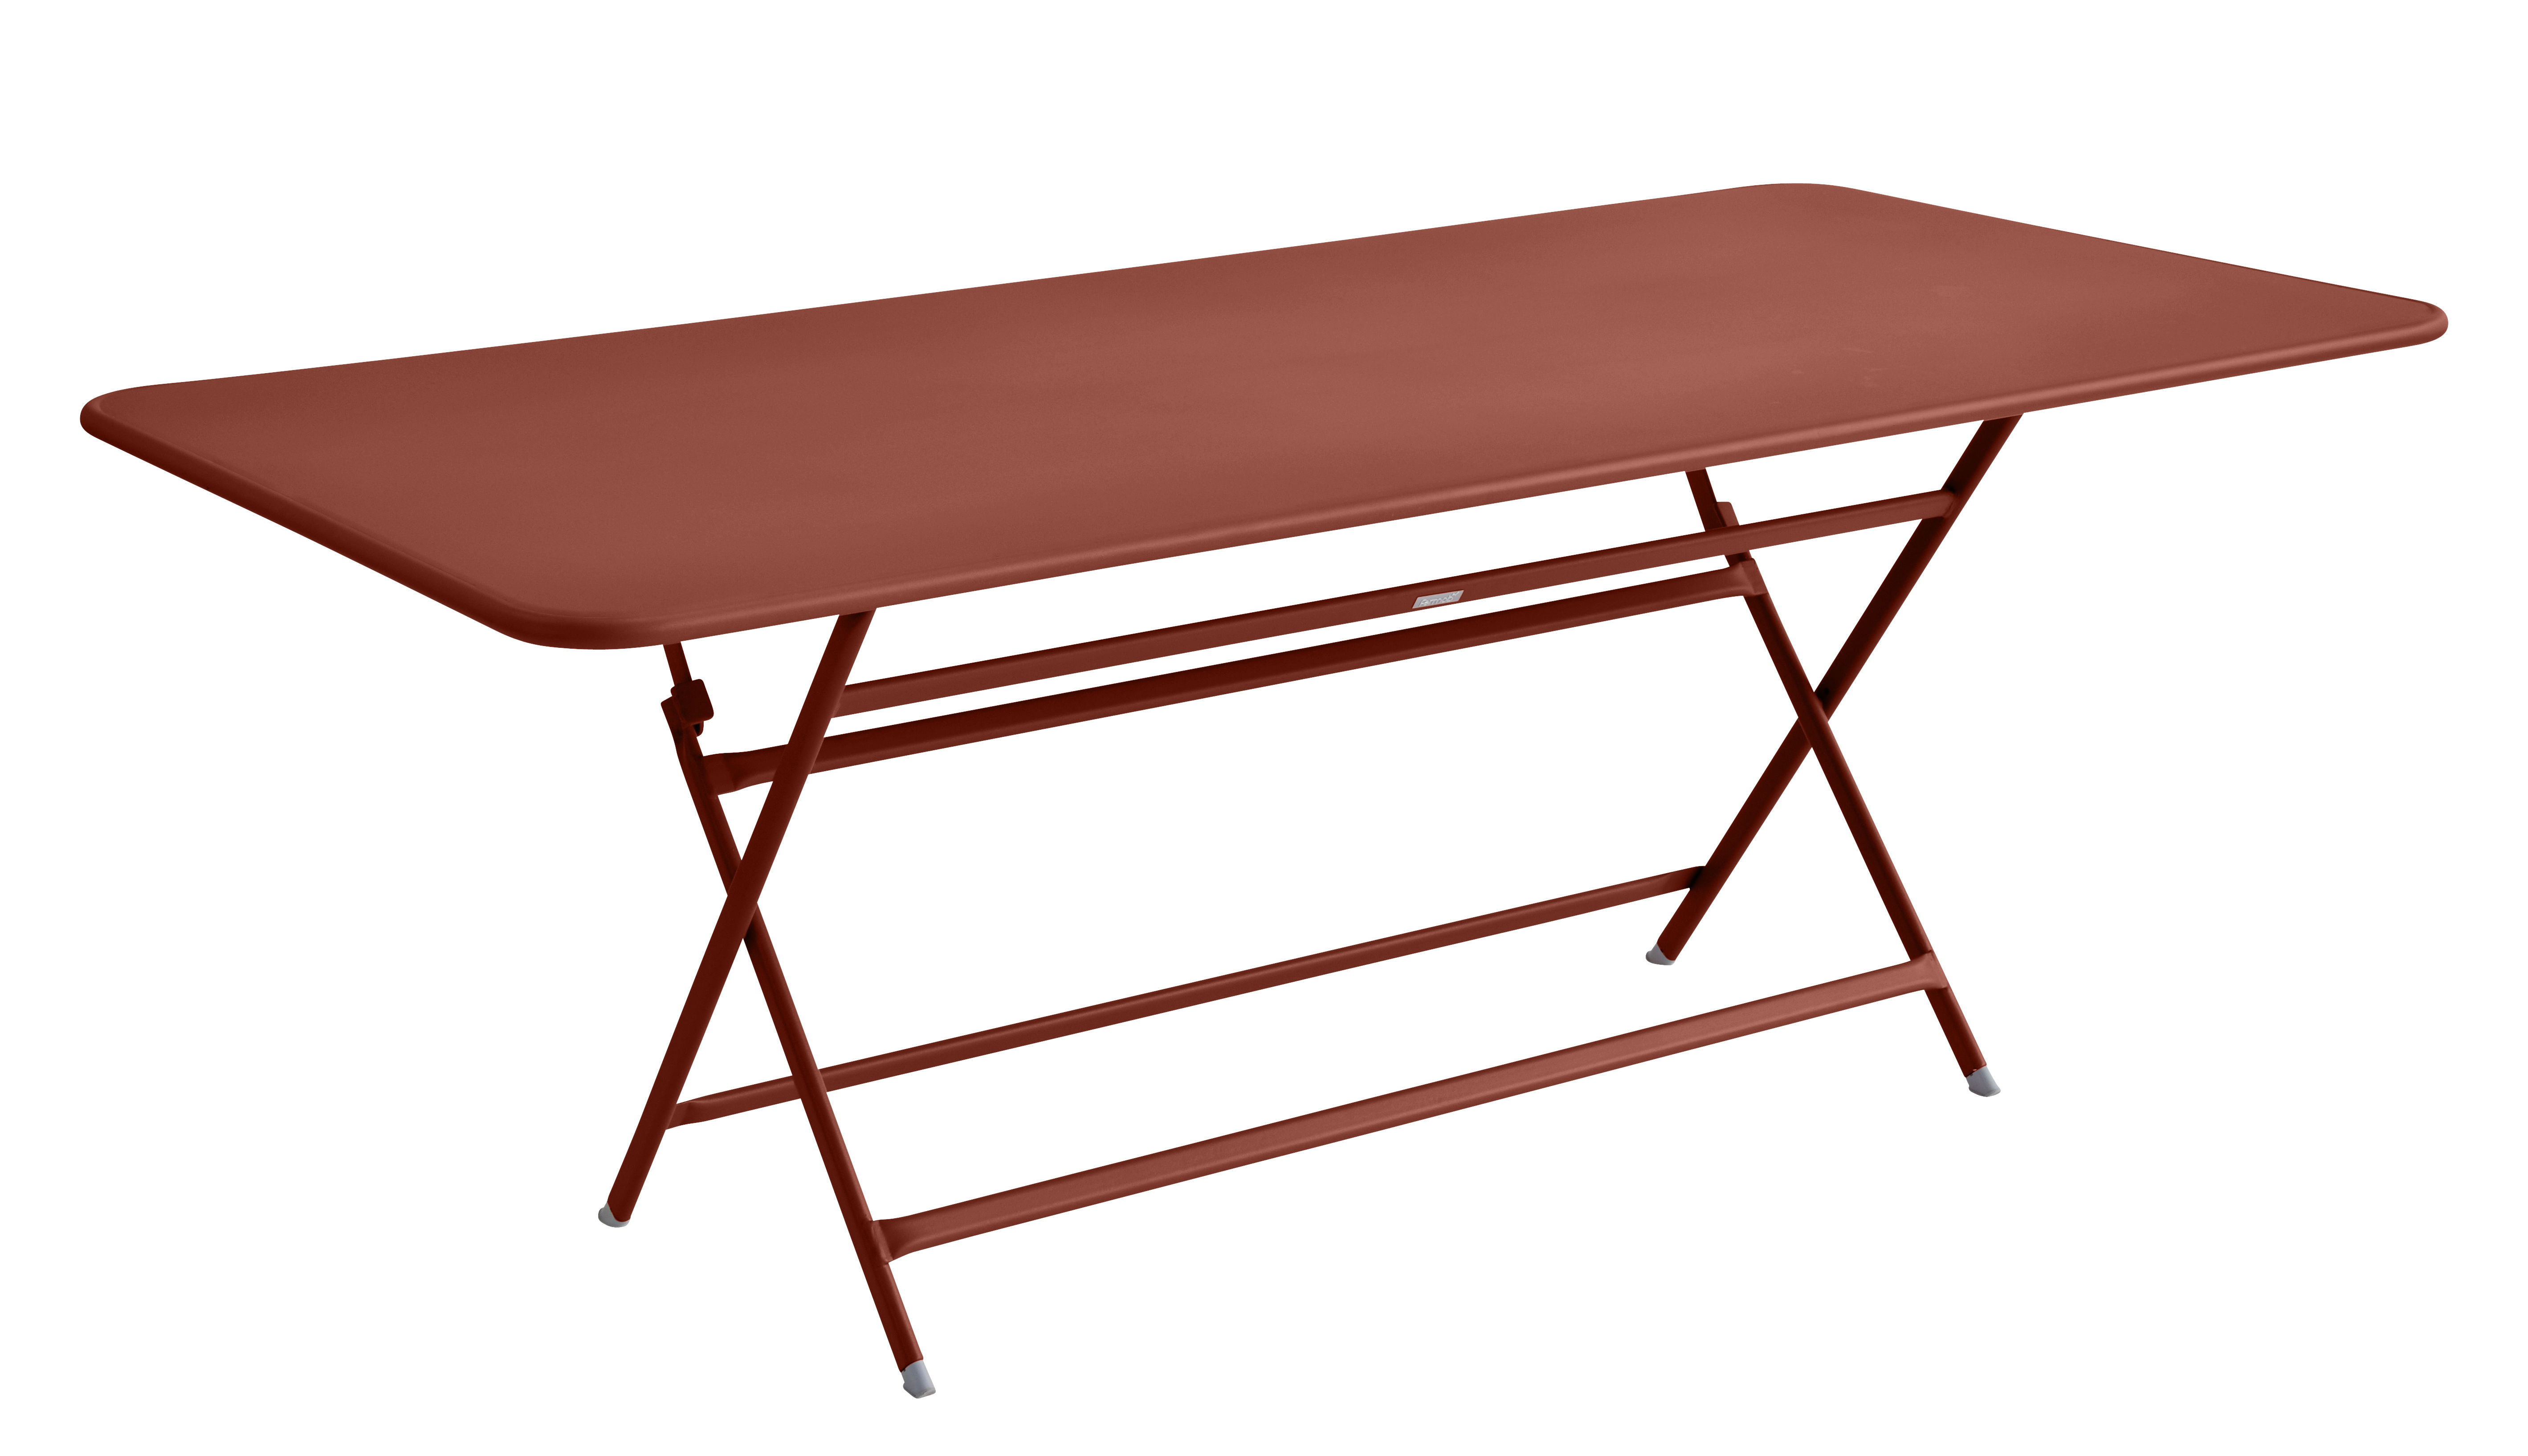 Table pliante Caractère Fermob - Rouge/Marron | Made In Design